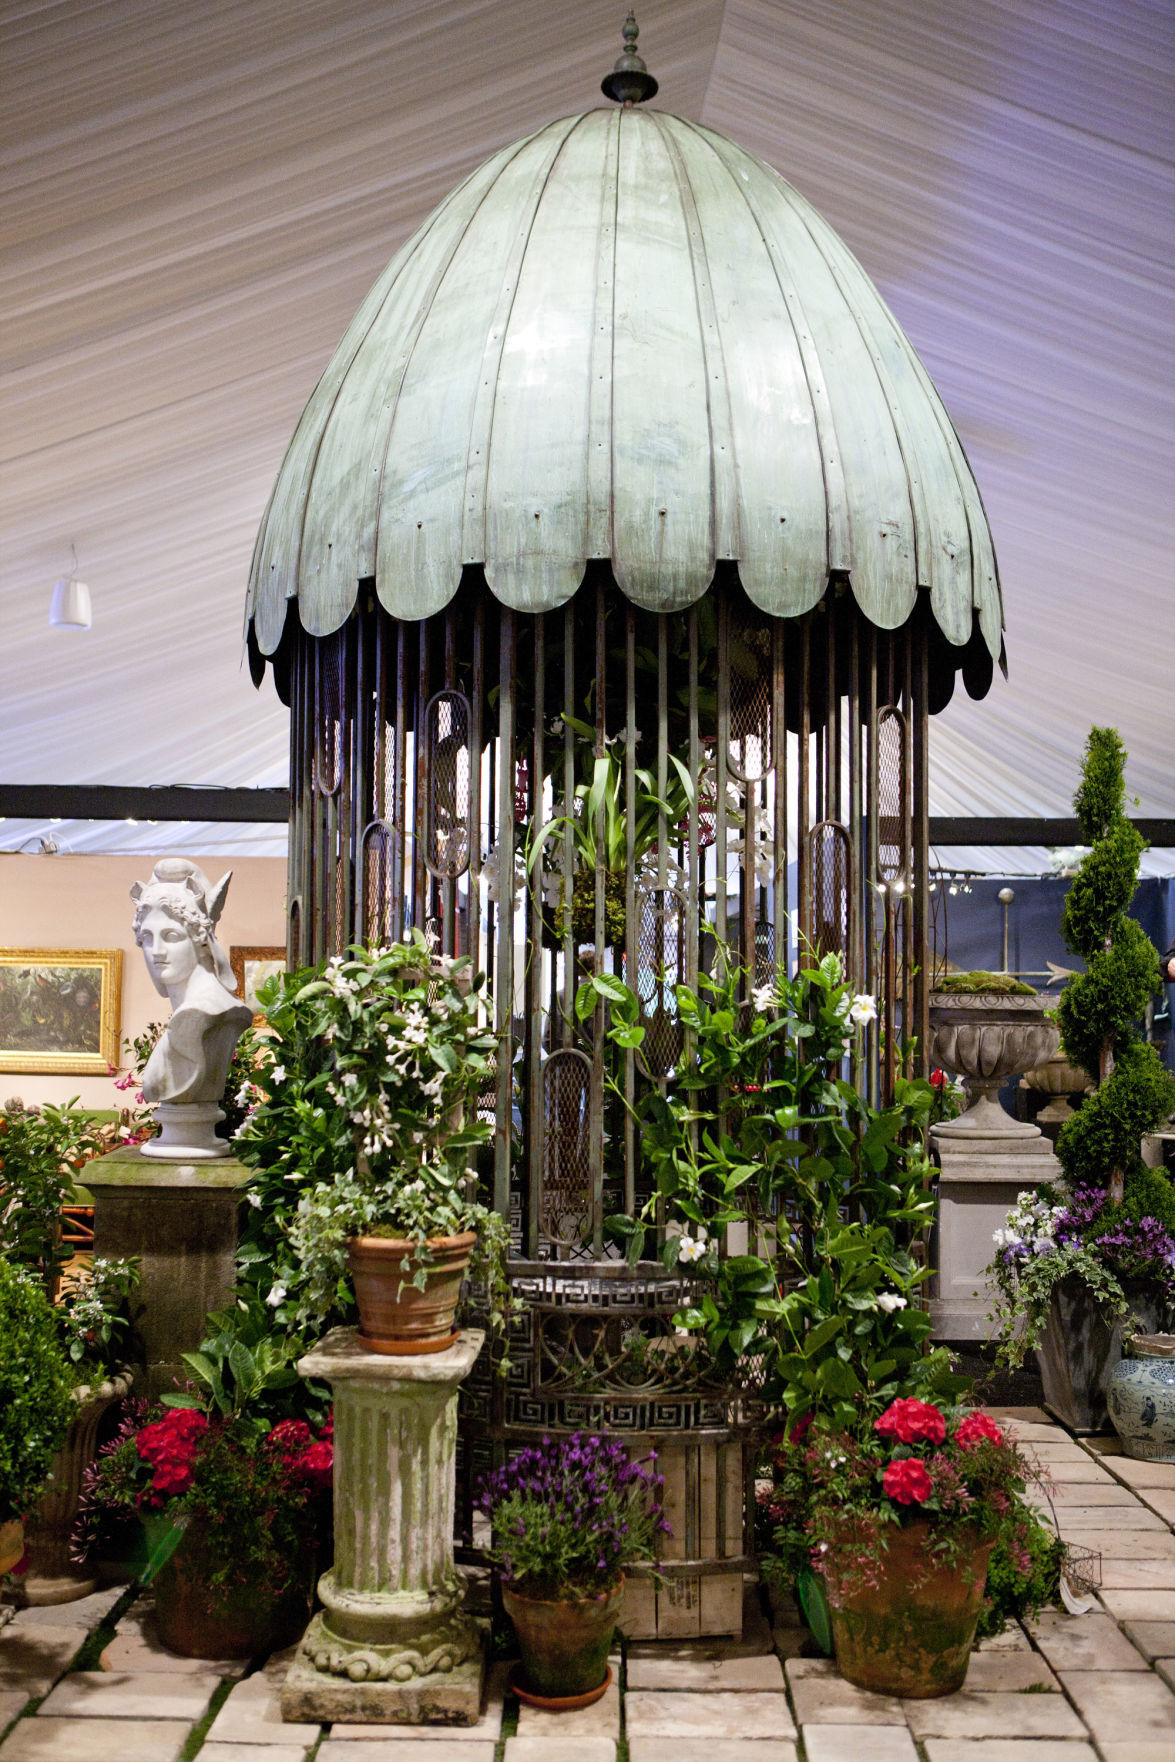 garden antiques. Pictured Here Are Garden Antiques From The Recent Antique Furniture Fair At New York Botanical In Bronx, York.